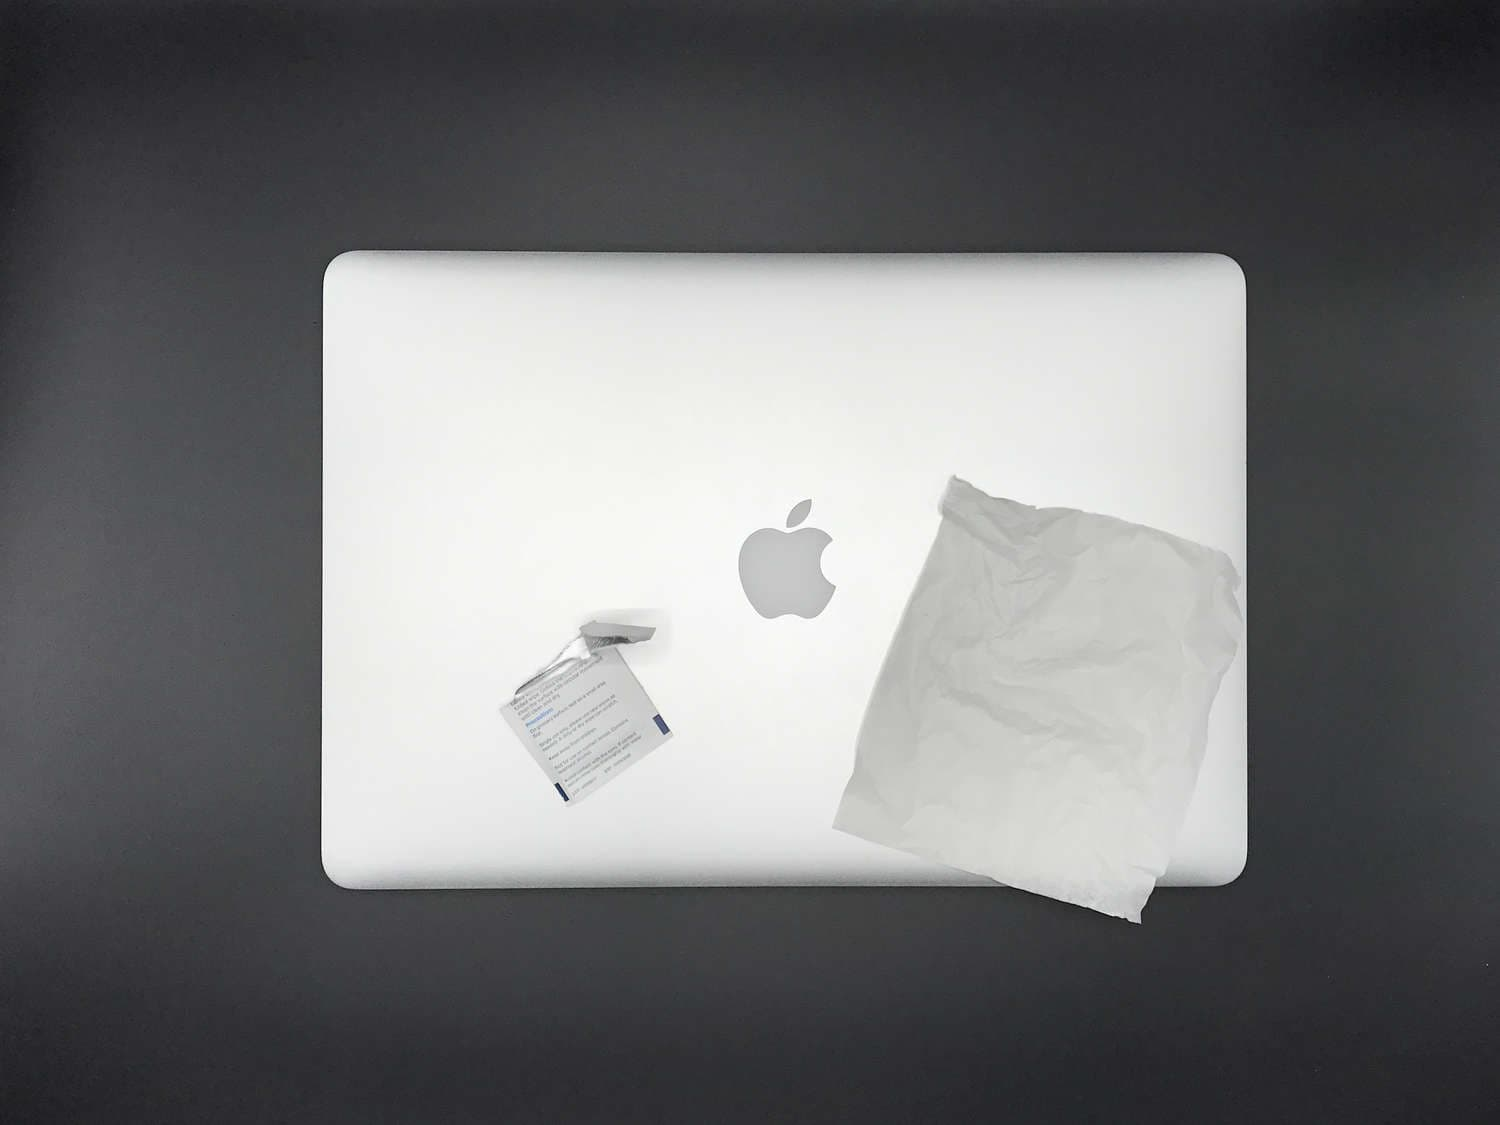 MacBook Pro Retina 15-inch and a cleaning cloth